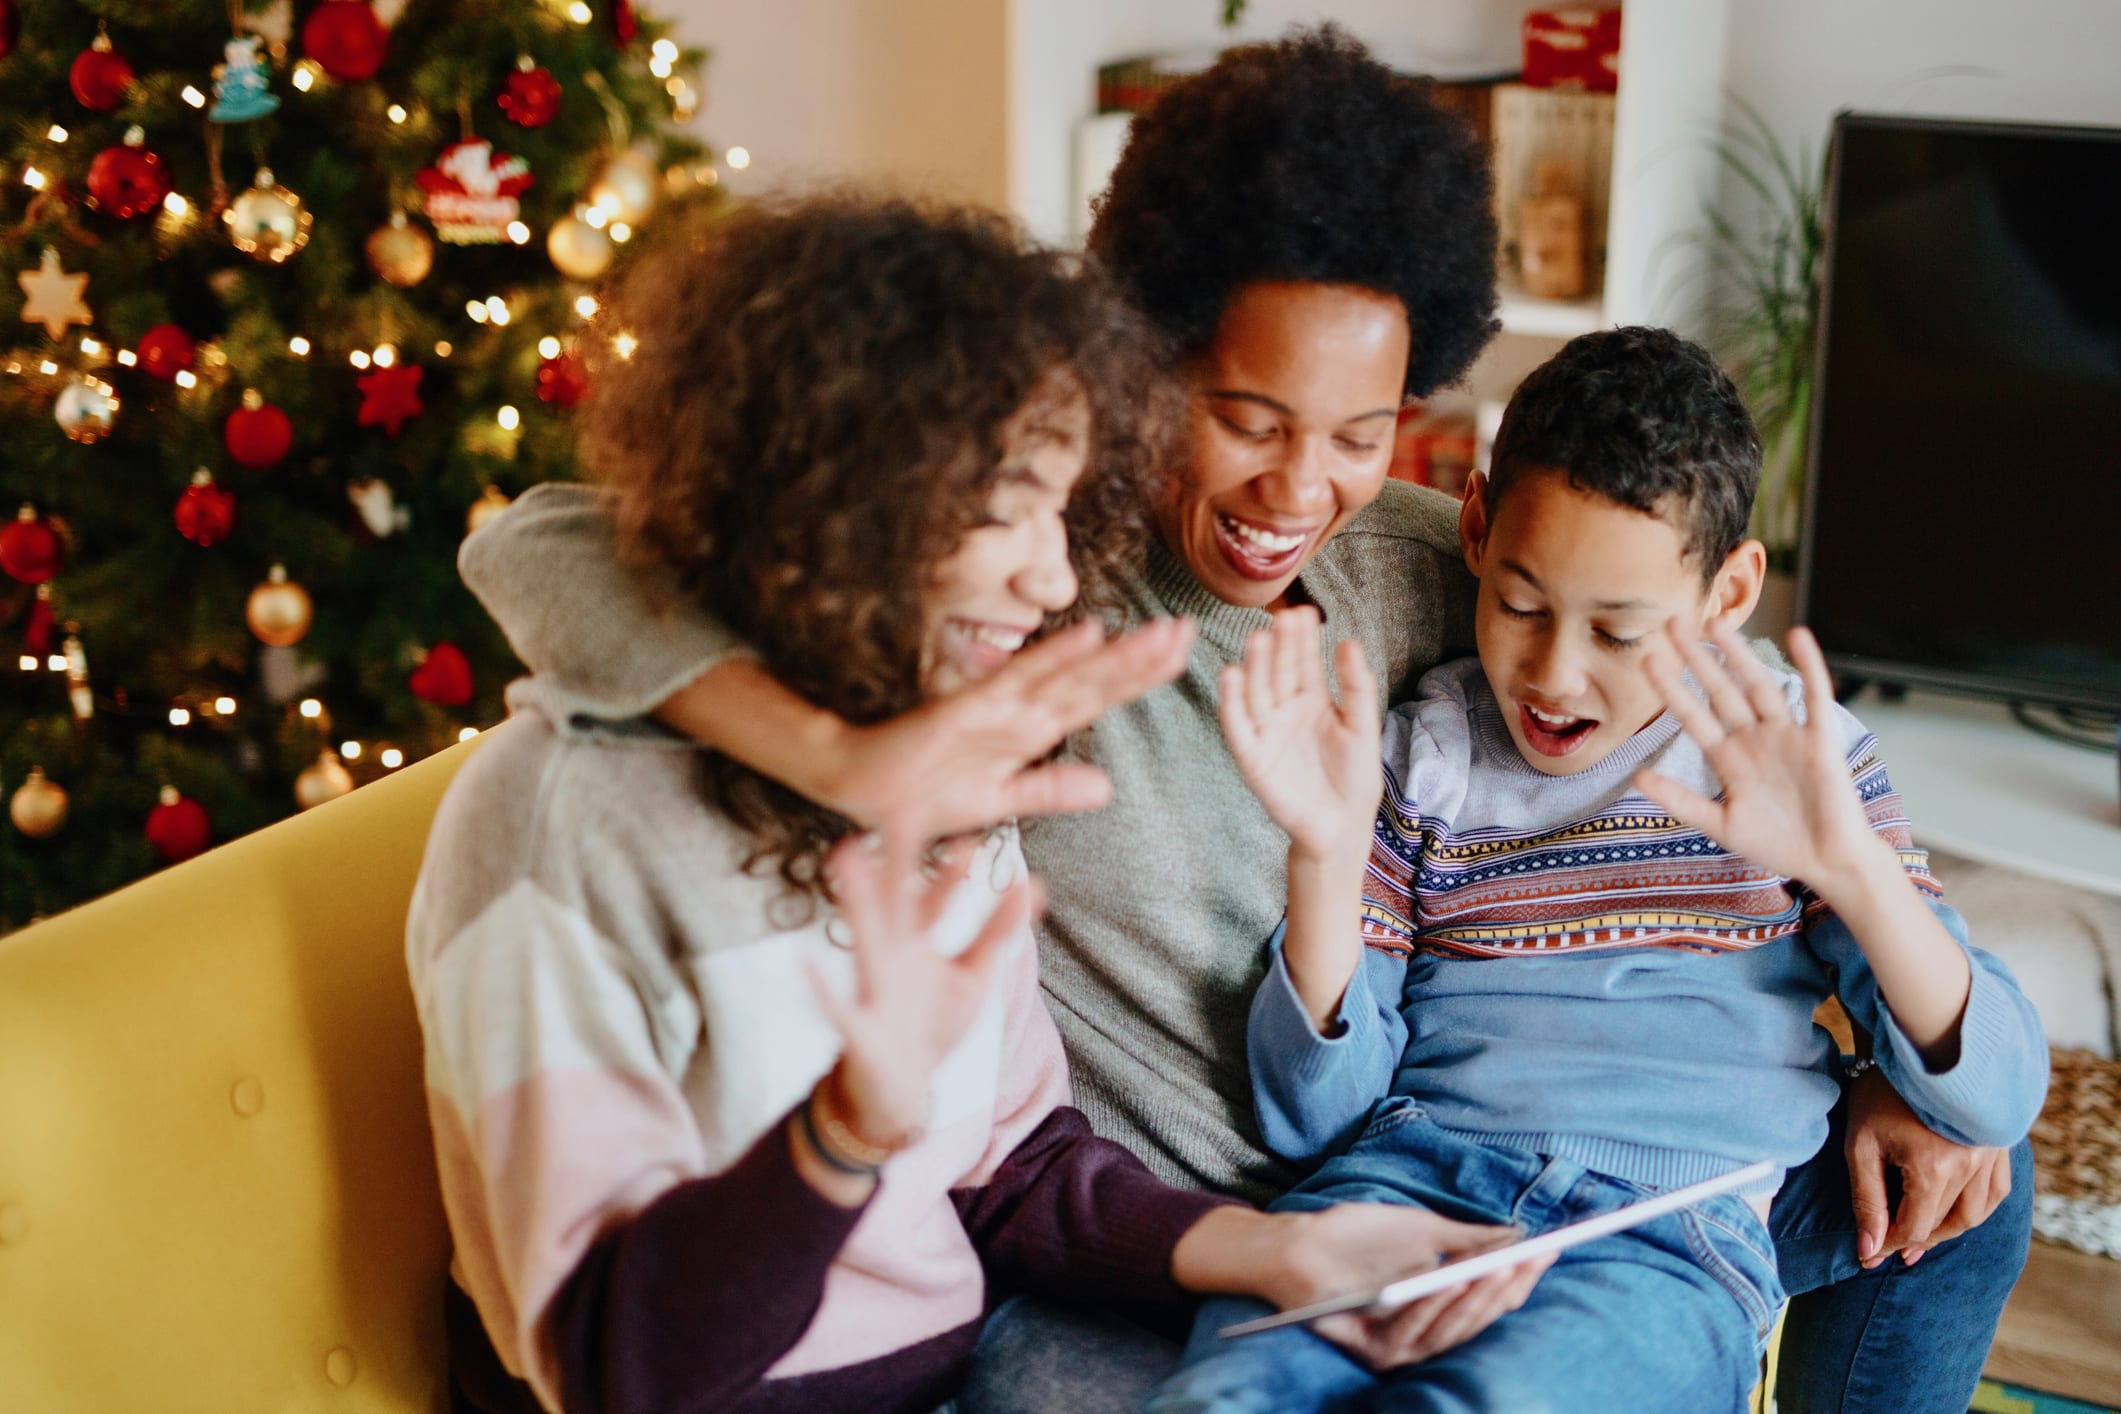 family on video call during holidays